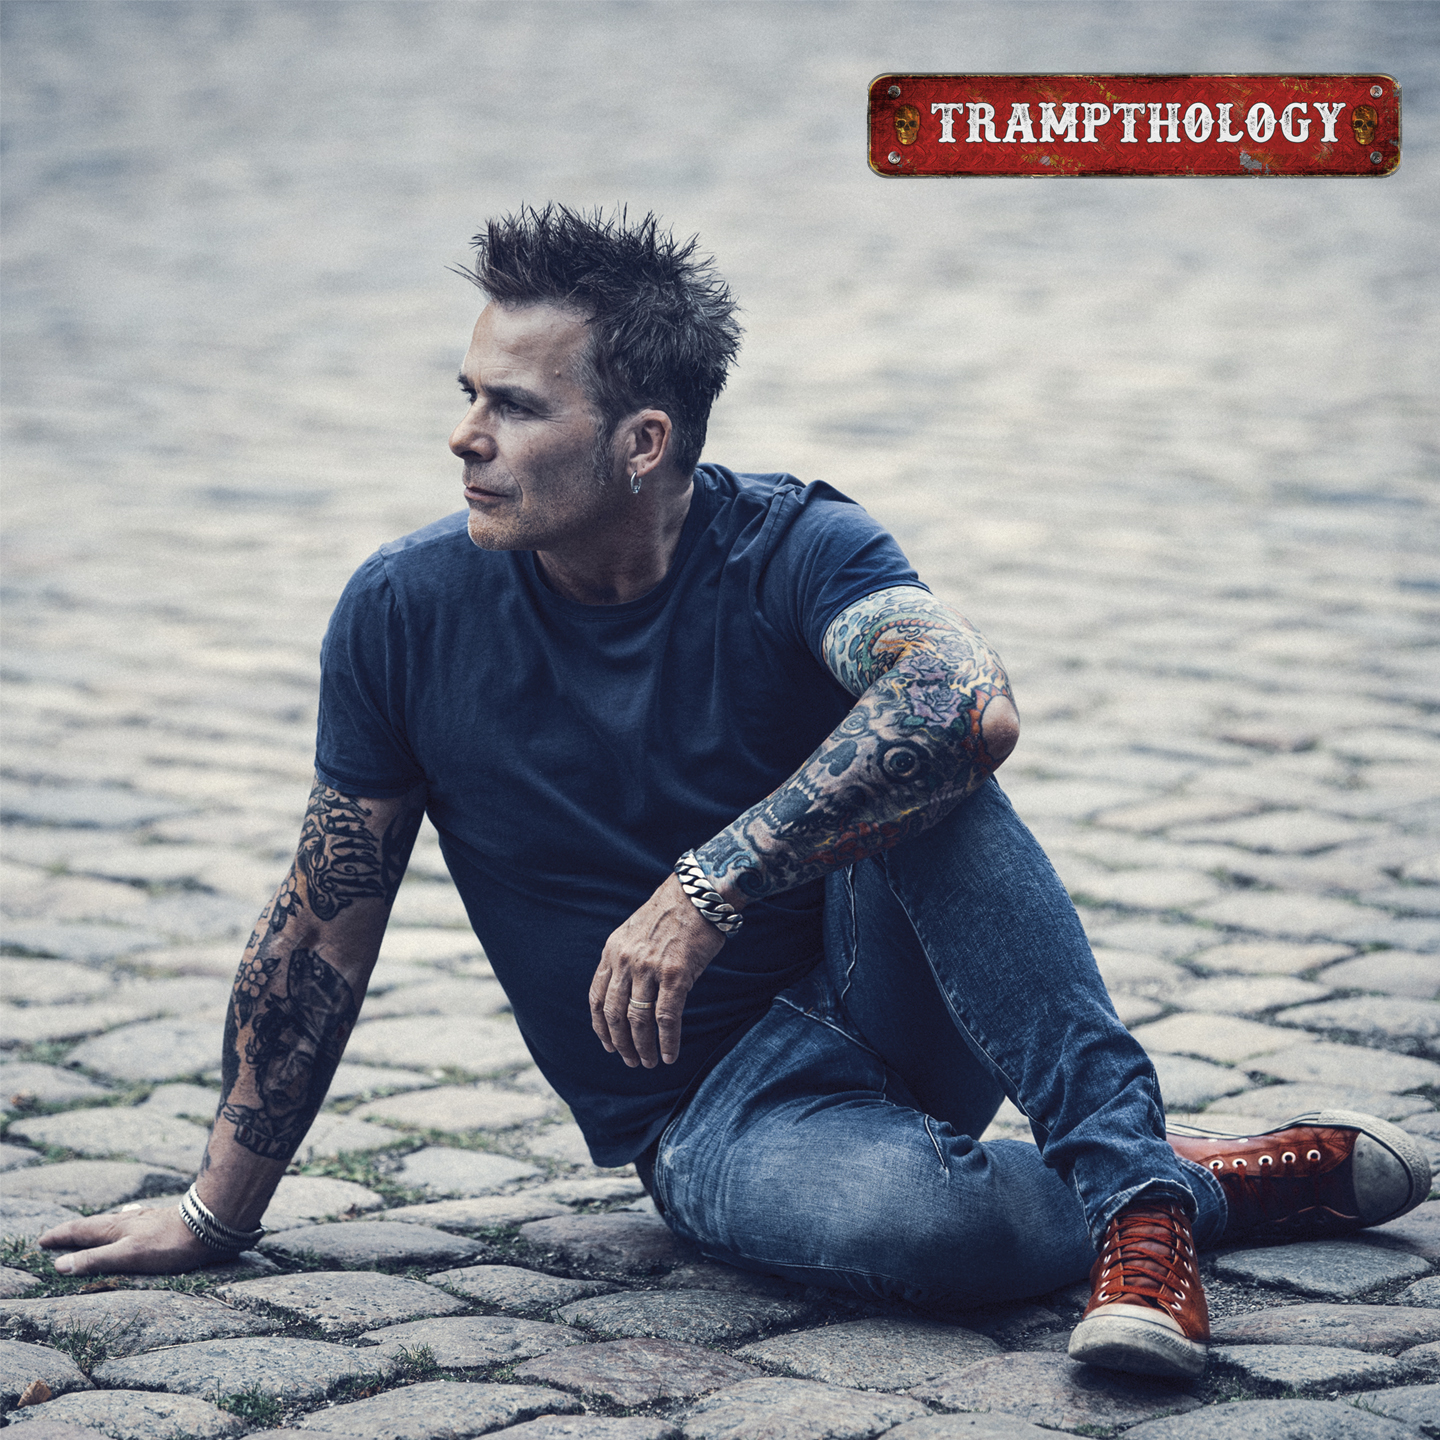 Mike Tramp – Trampthology (album)